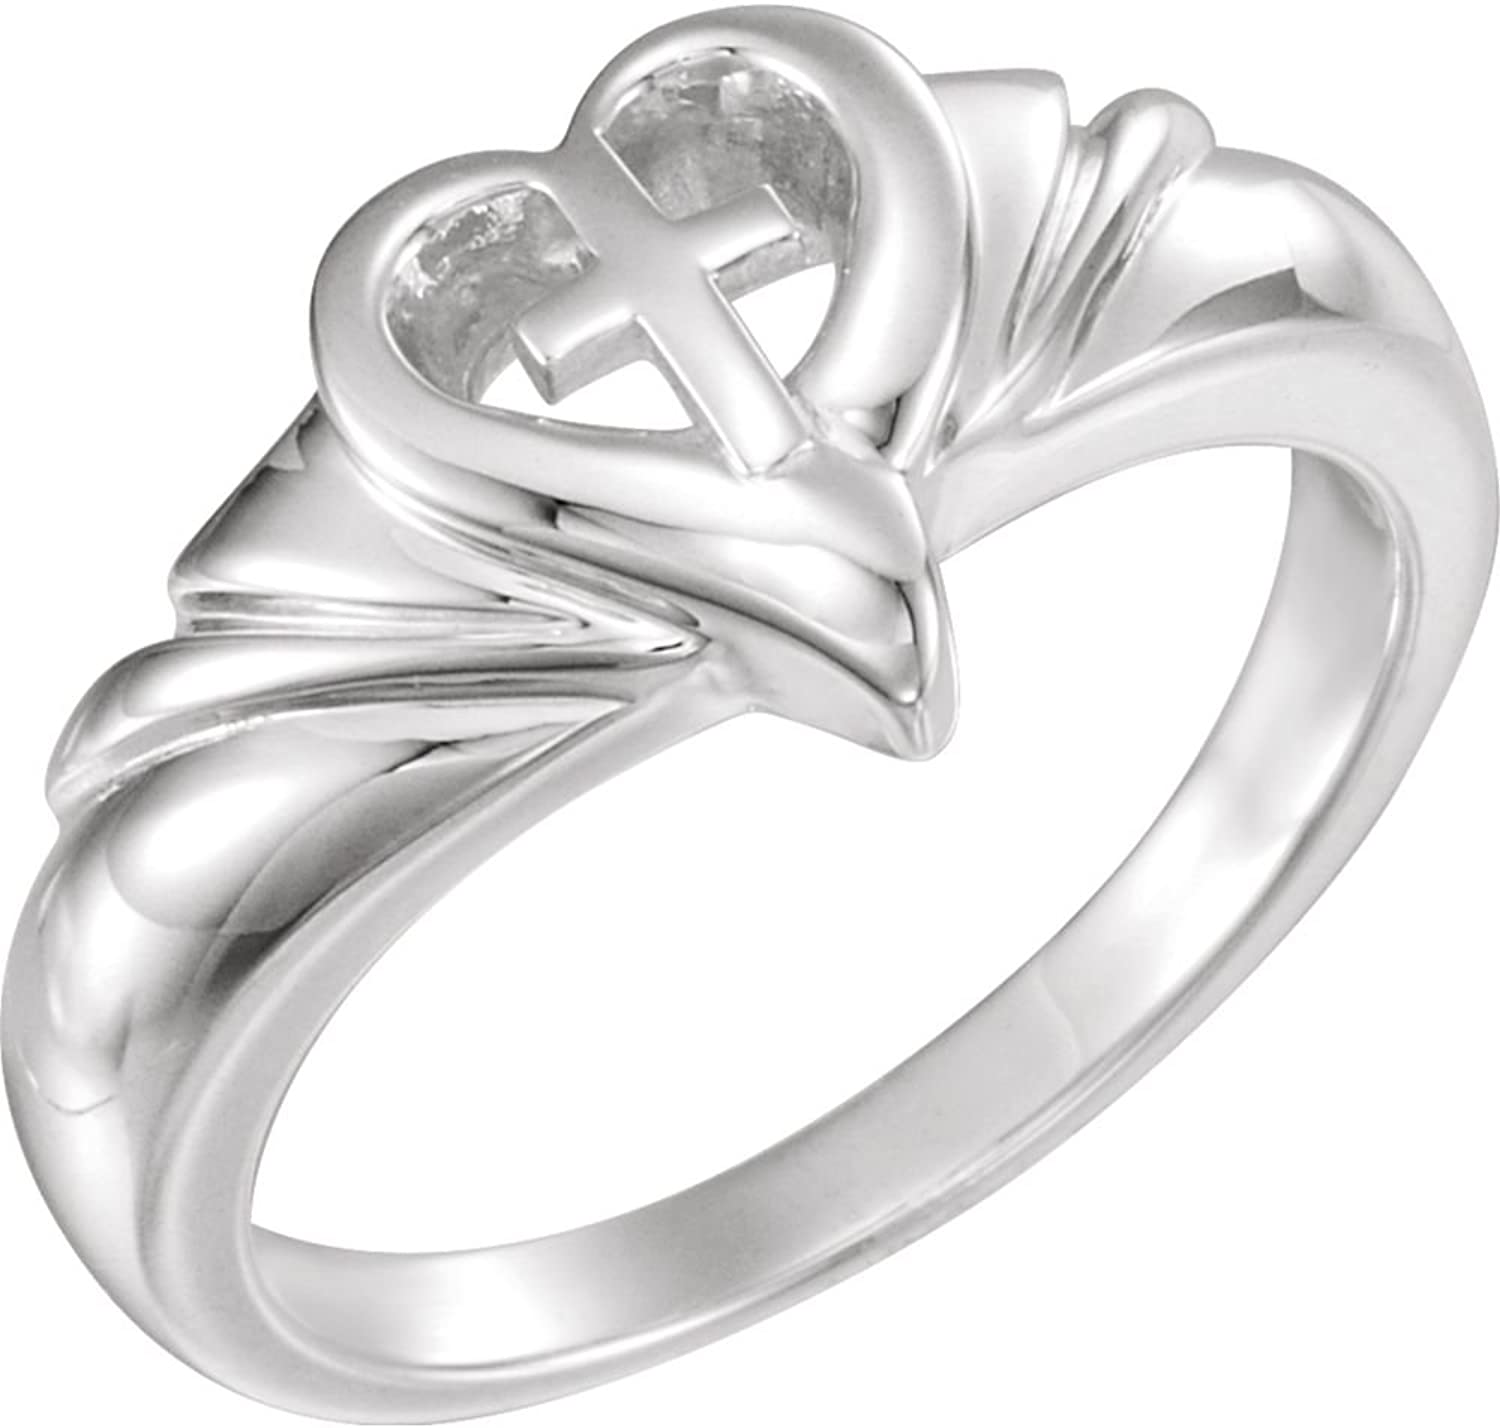 Beautiful Sterling silver 925 sterling Sterlingsilver Heart & Cross Ring